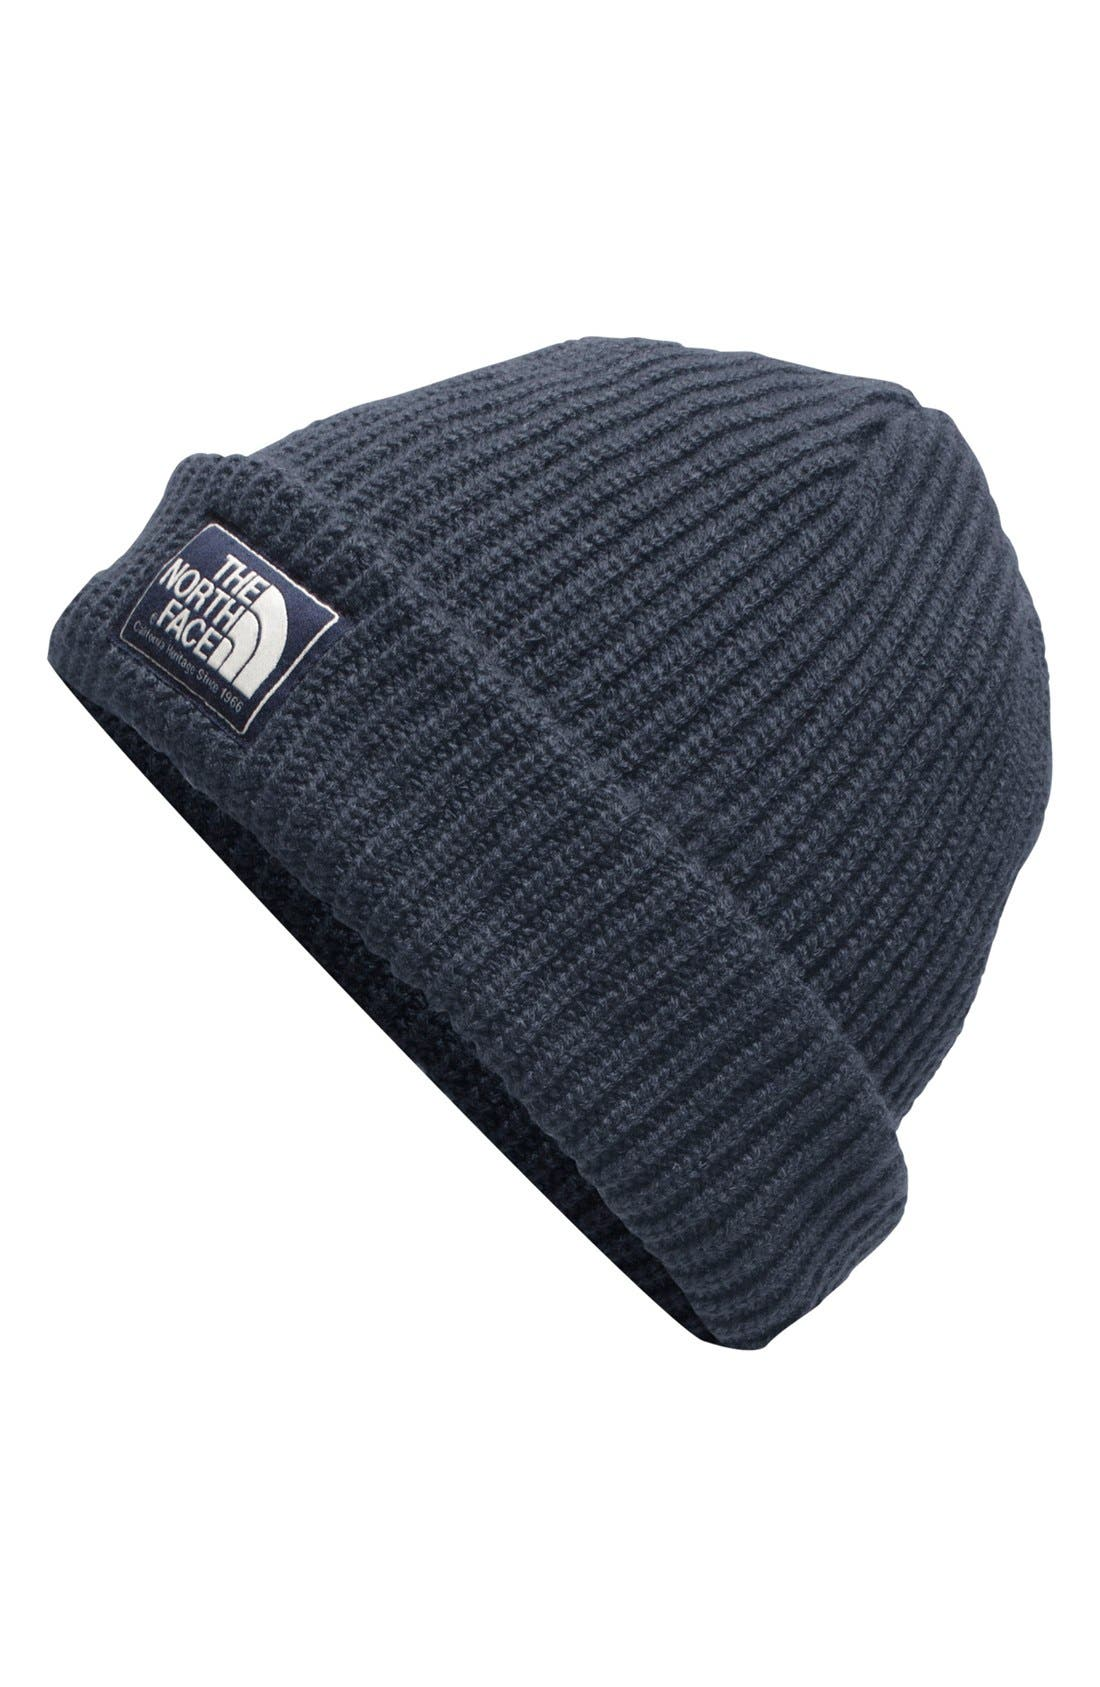 Main Image - The North Face 'Salty Dog' Beanie